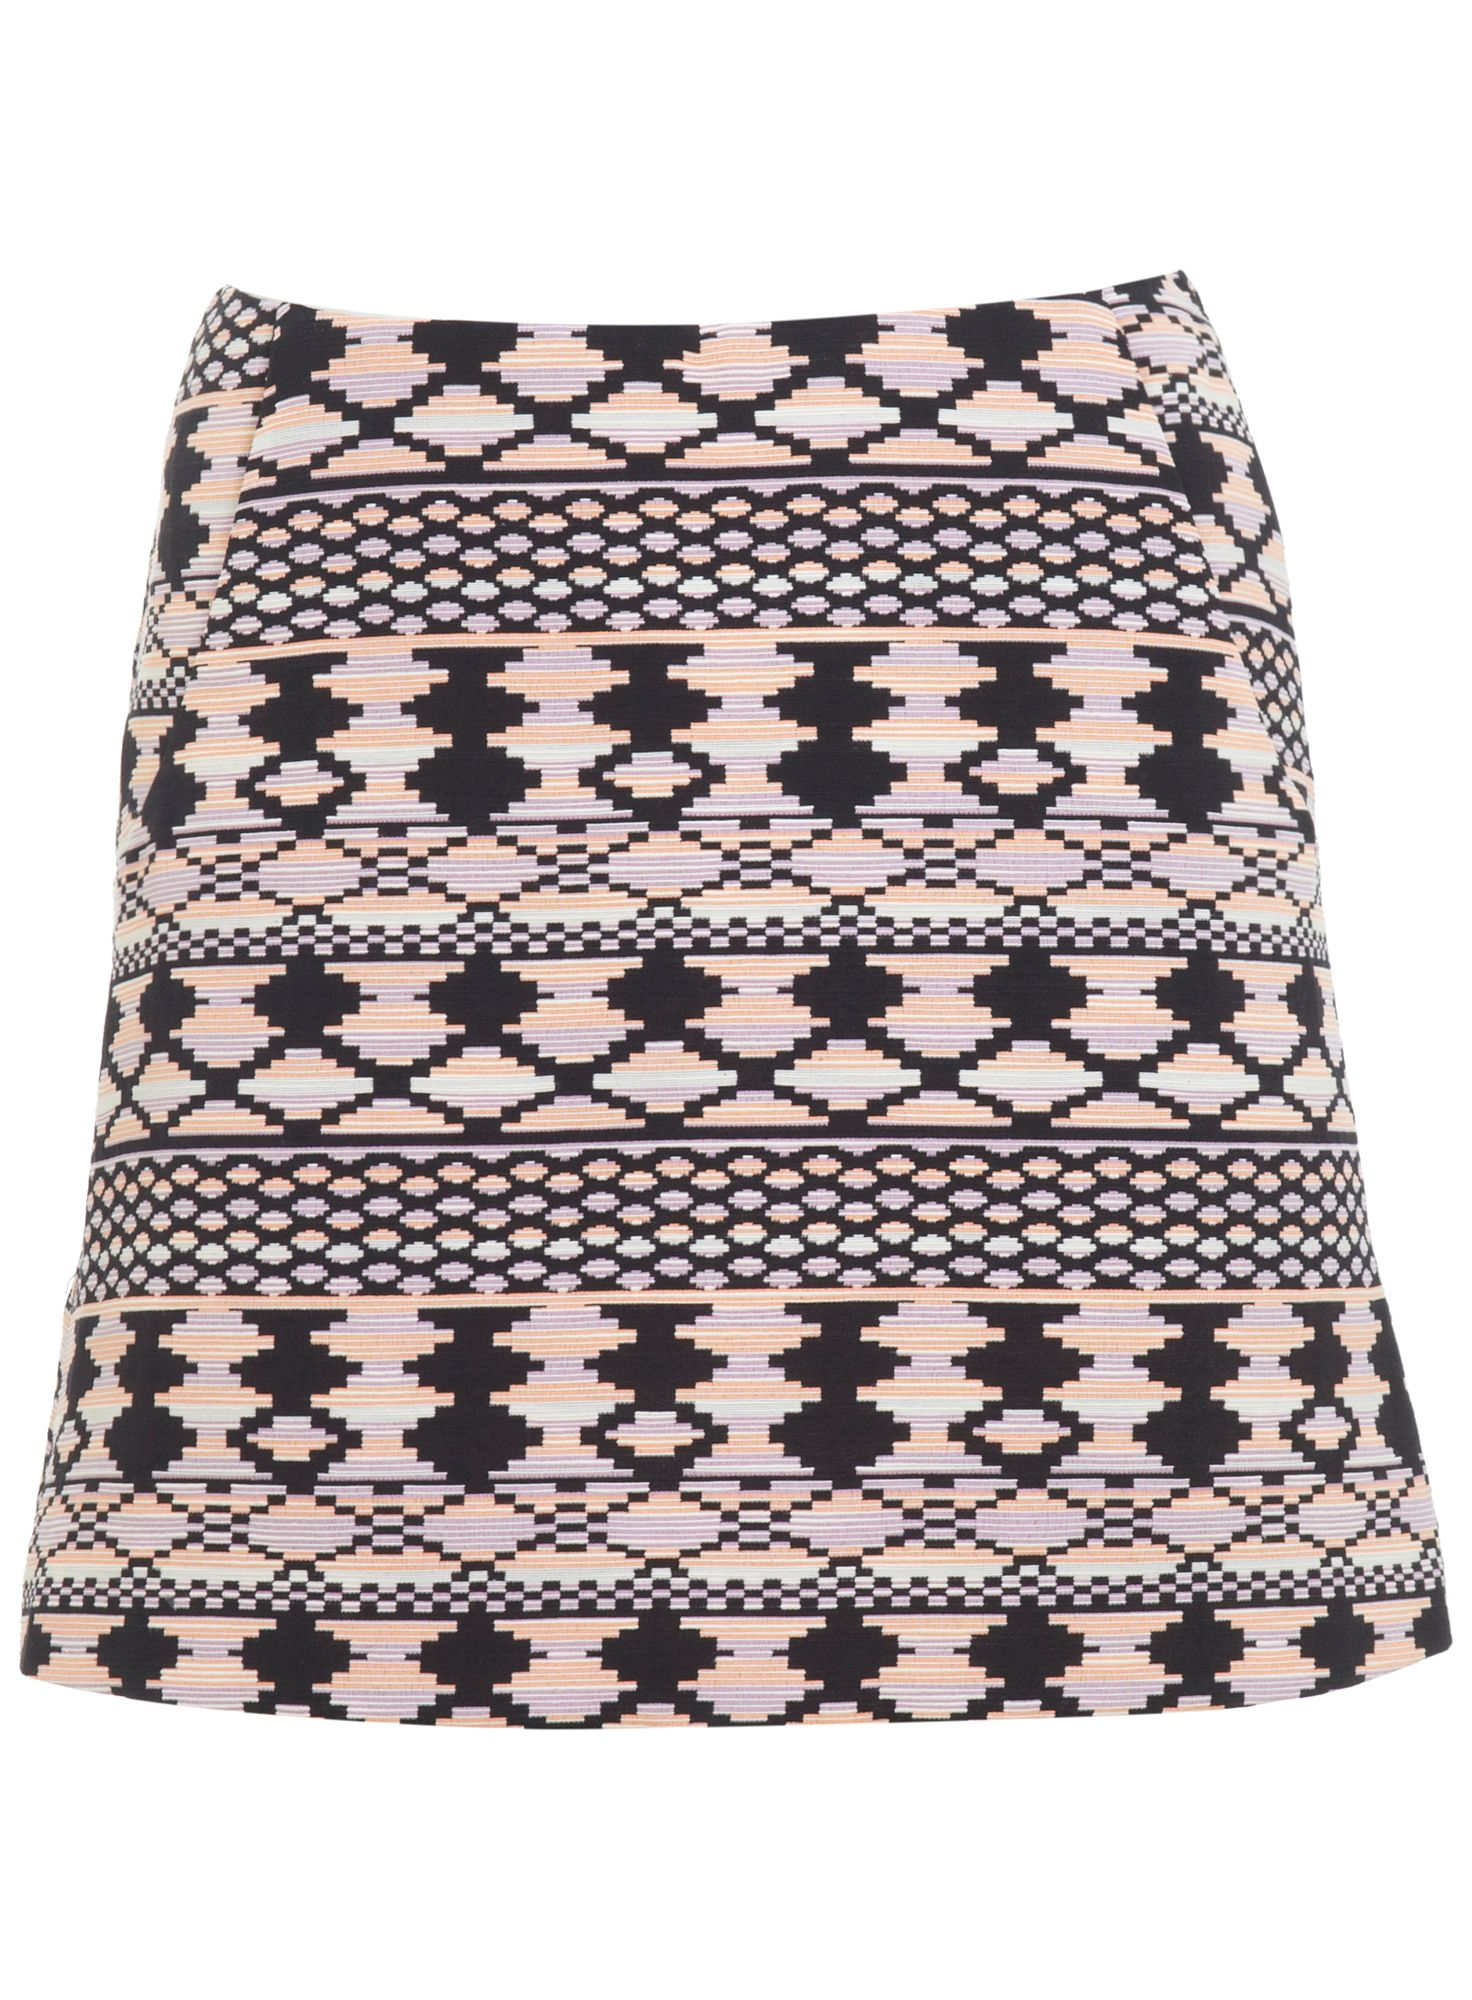 Aztec mini skirt